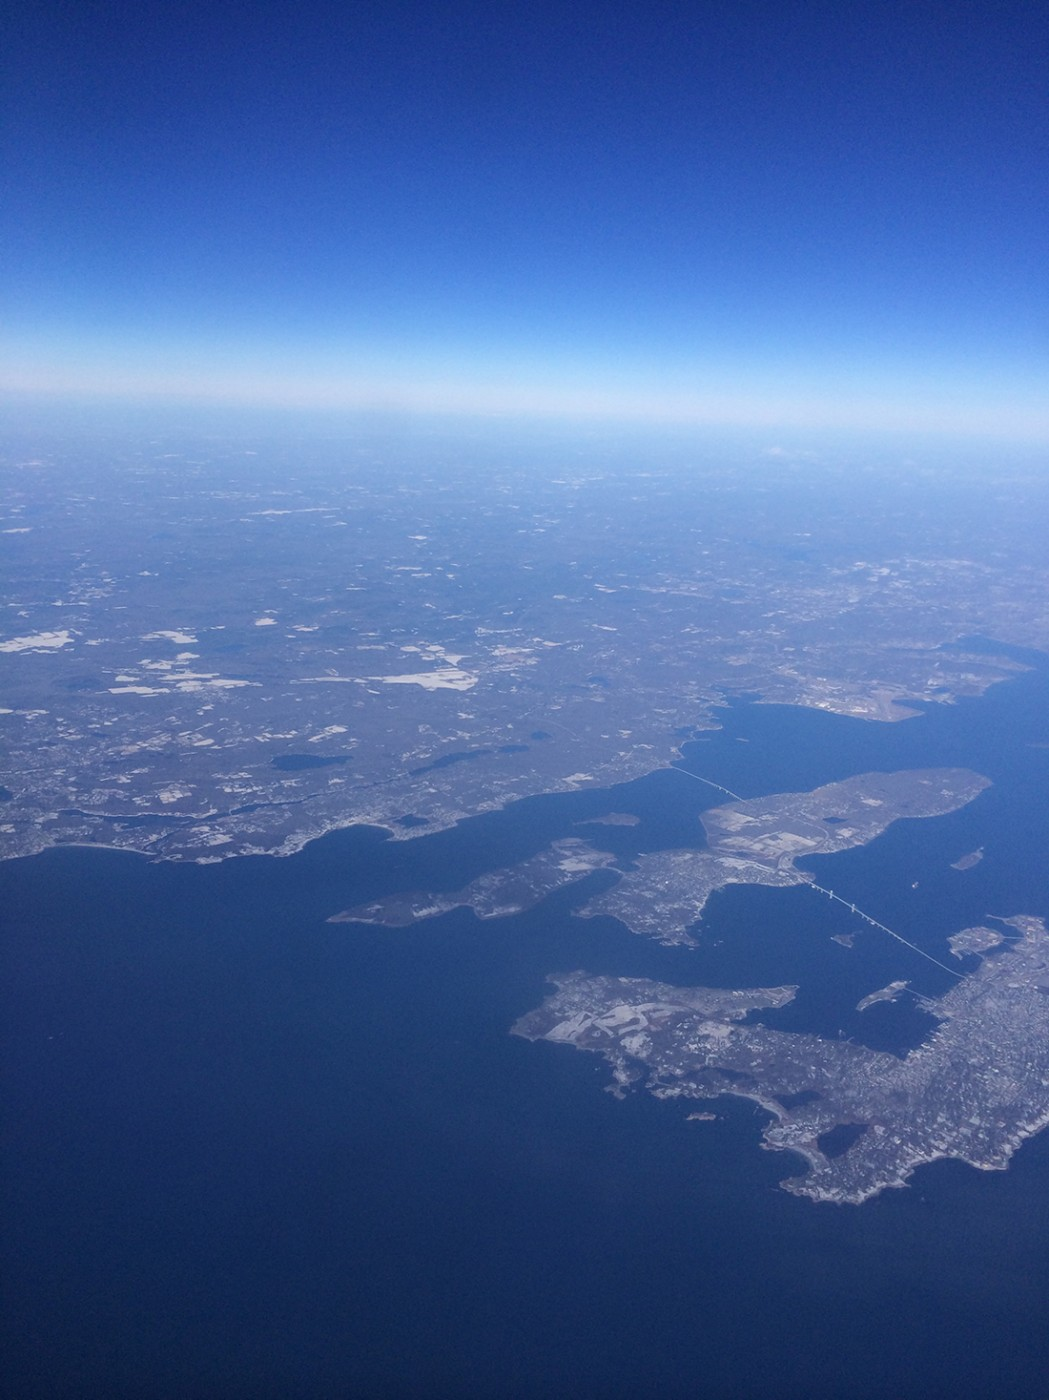 Eastern and Western Passage to Narragansett Bay